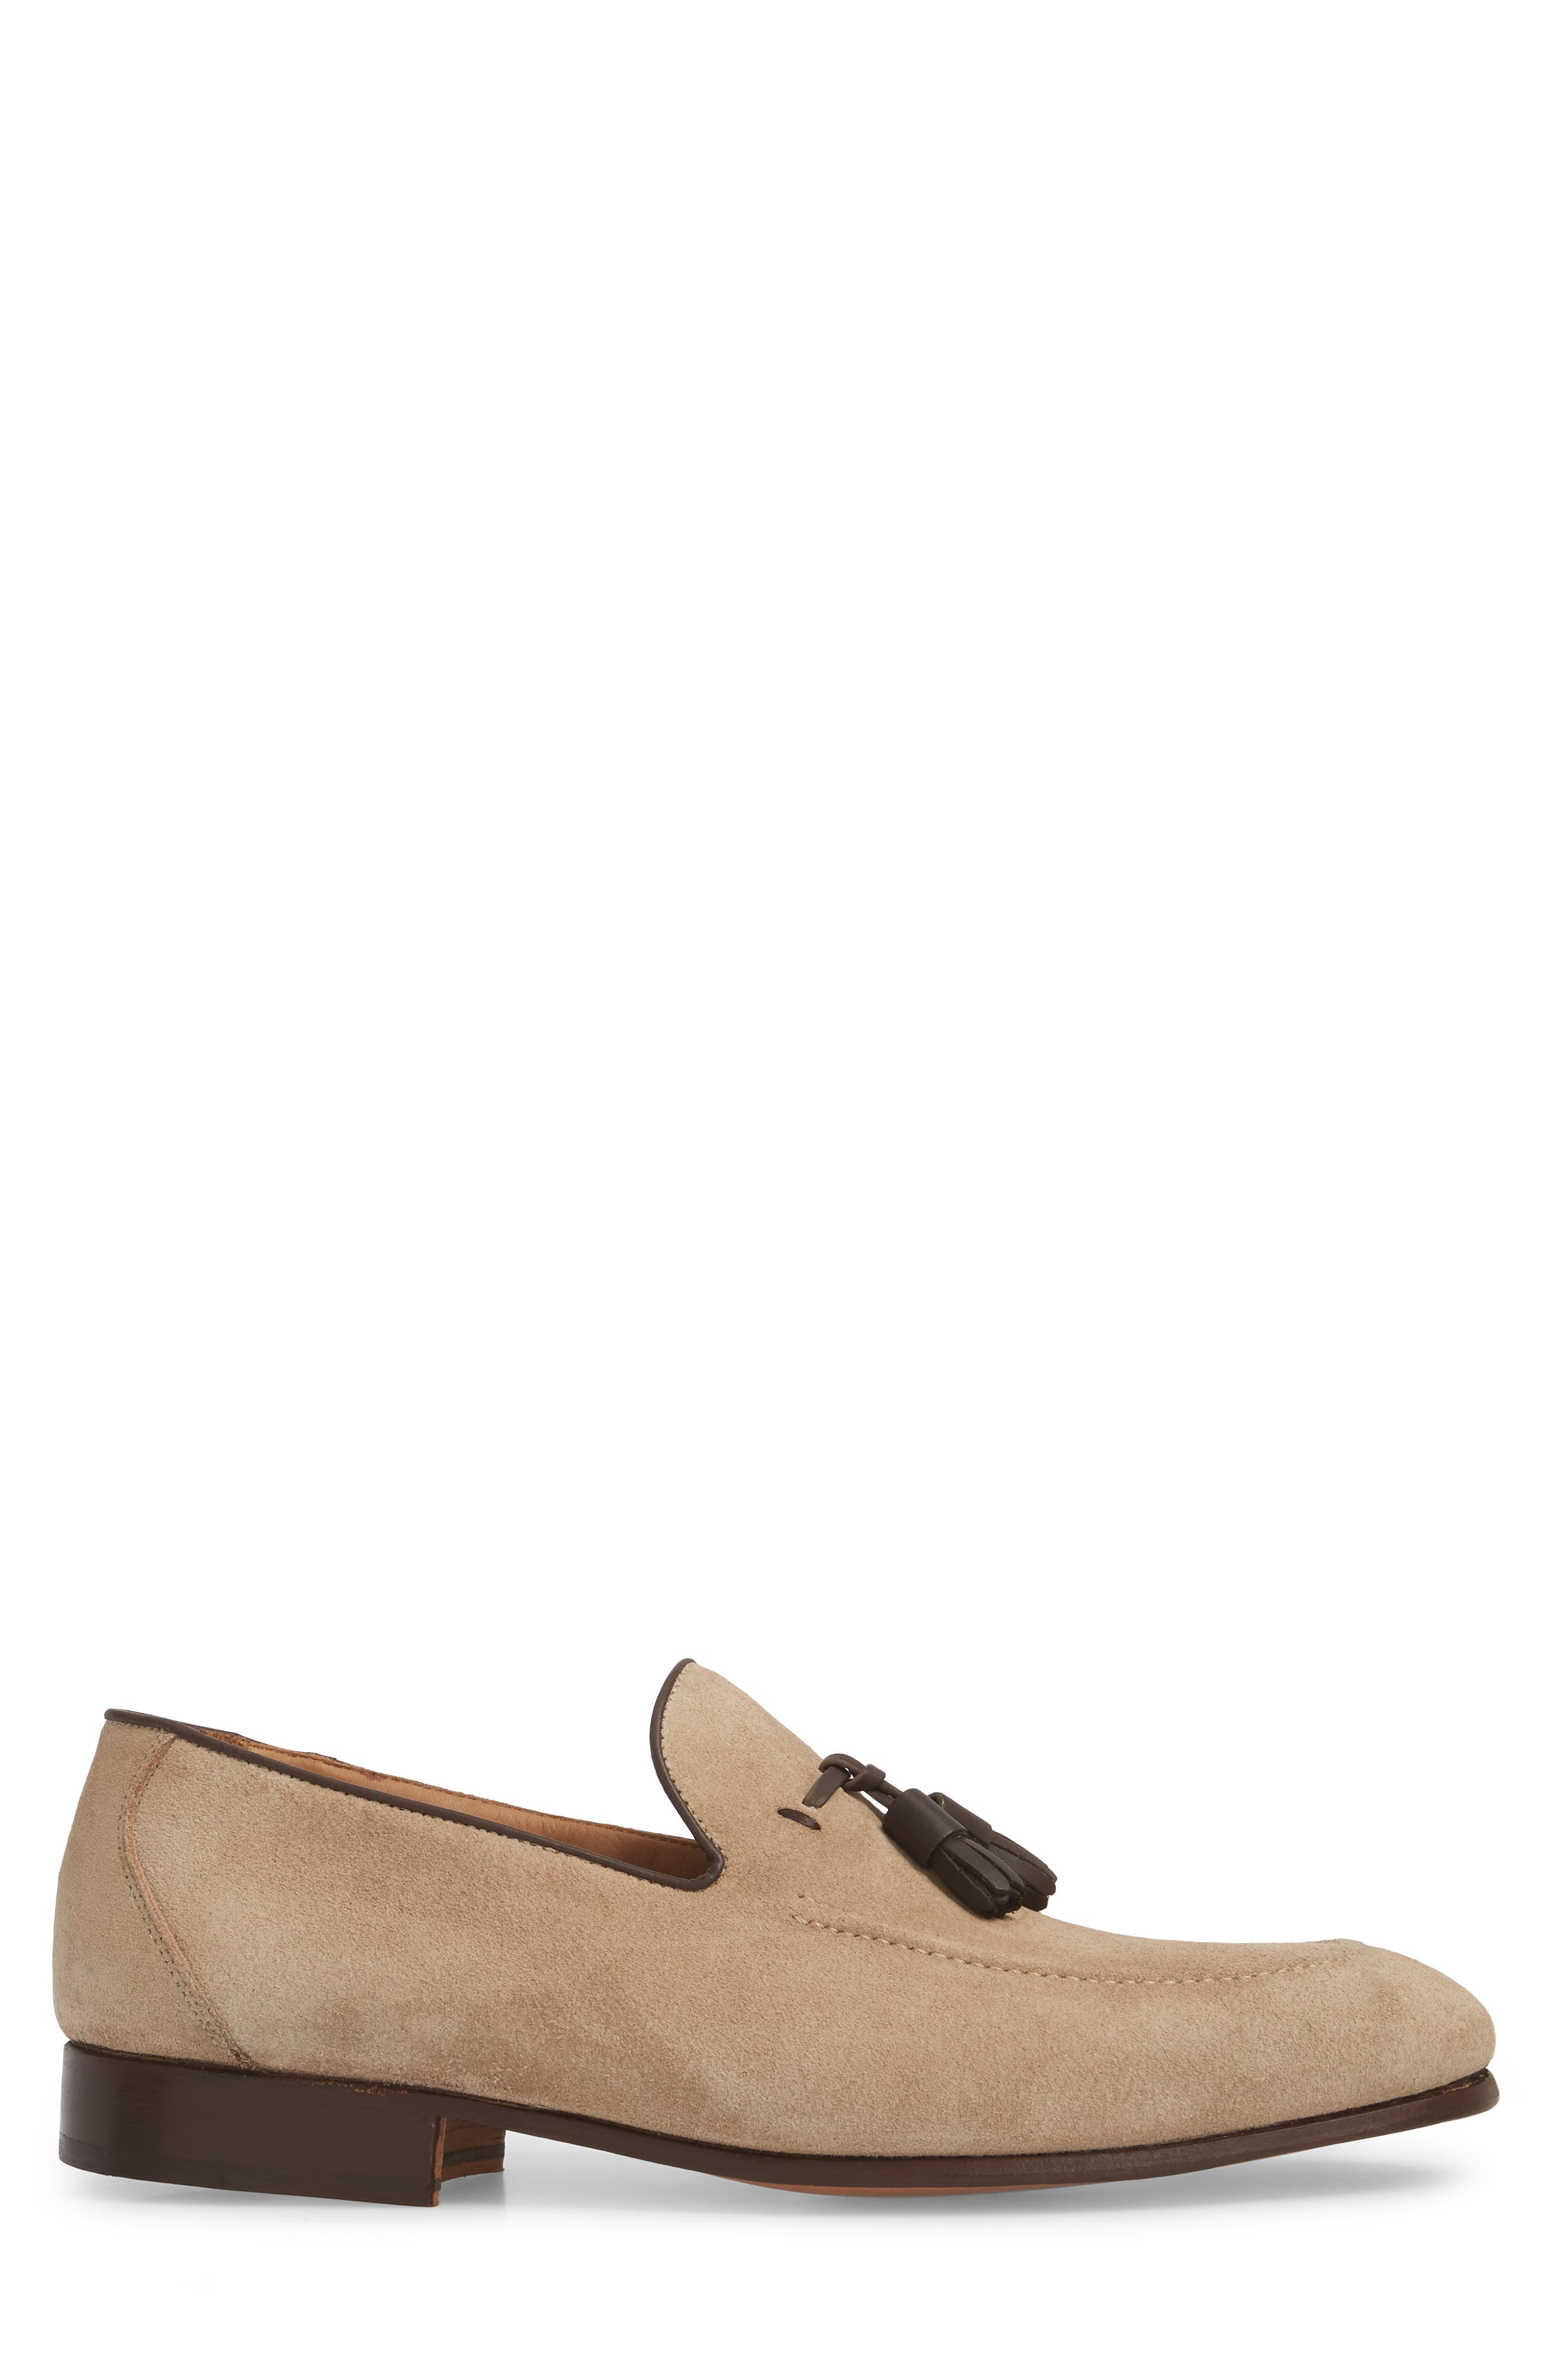 Ario Tassel Loafer,                             Alternate thumbnail 3, color,                             Sand Suede